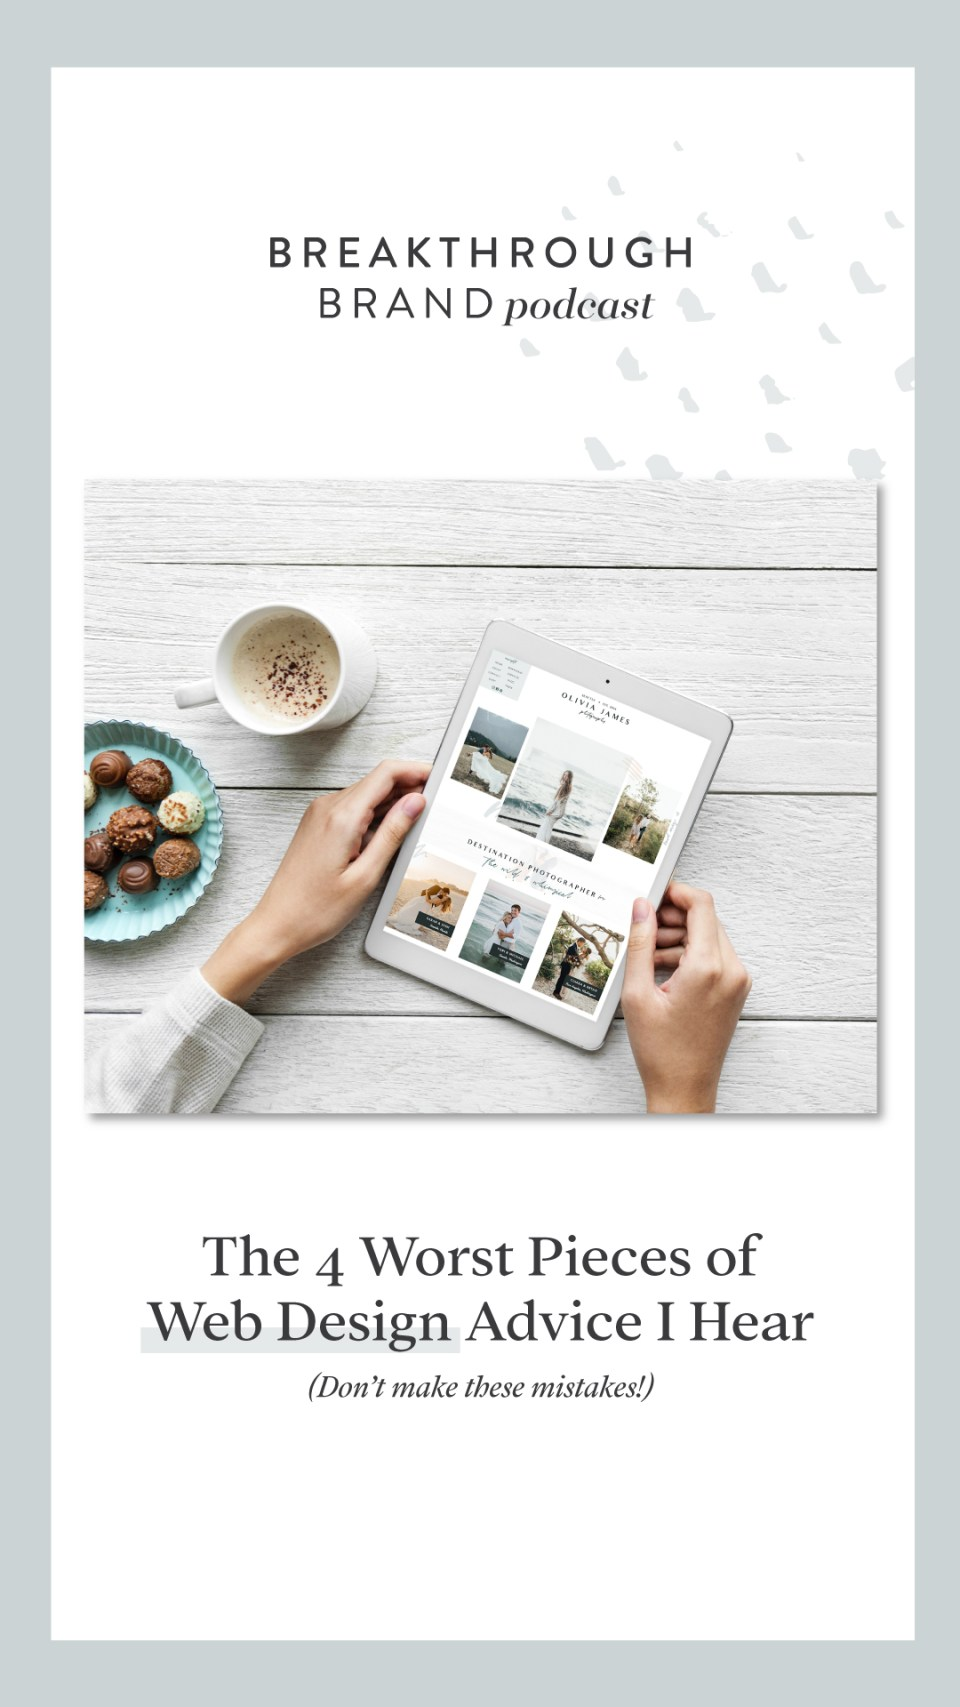 The Worst Pieces of Website Design Advice You'll Hear! Be sure to not make the mistake of following these tips!